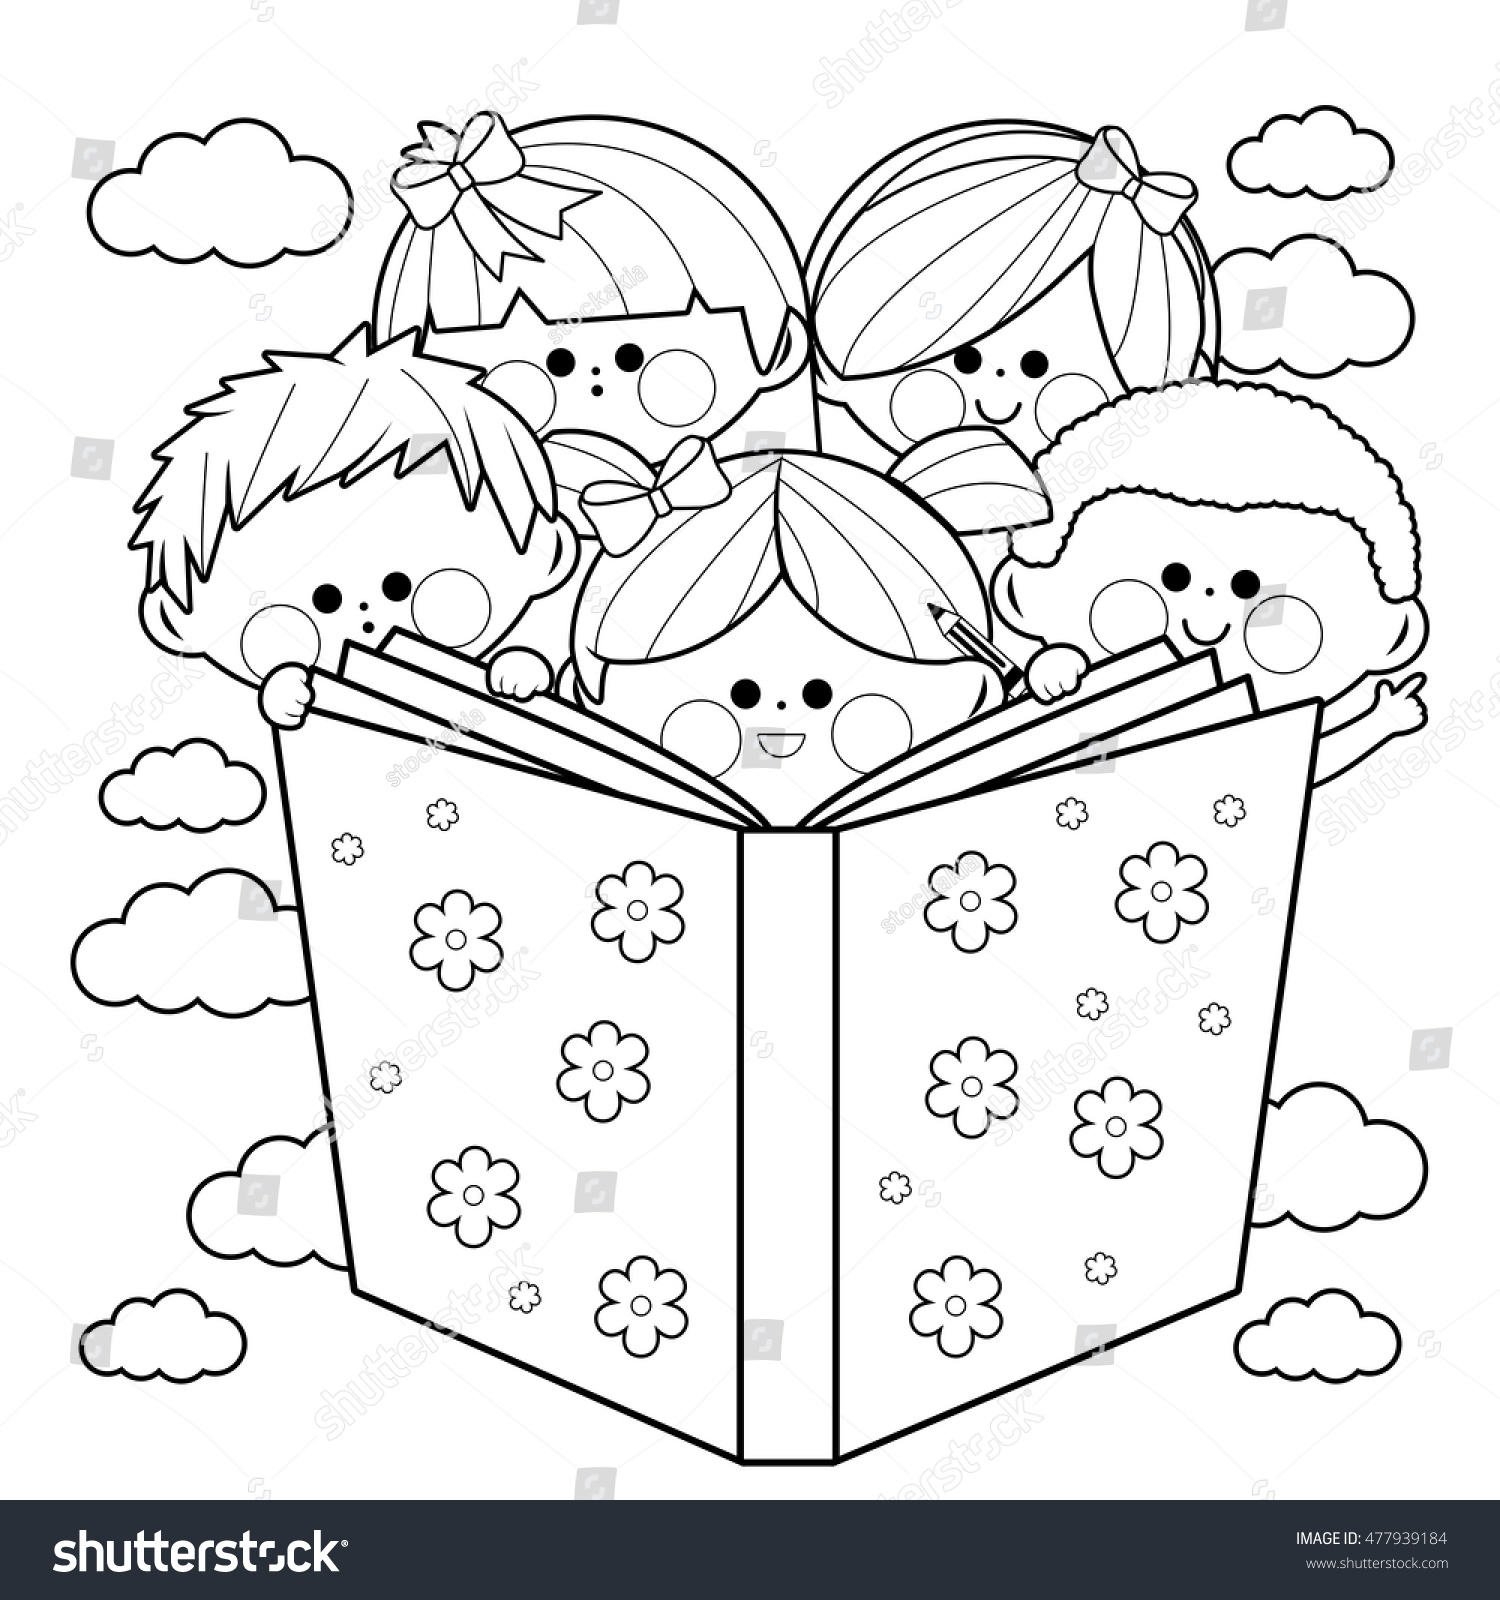 group kids reading book coloring book stock vector 477939184